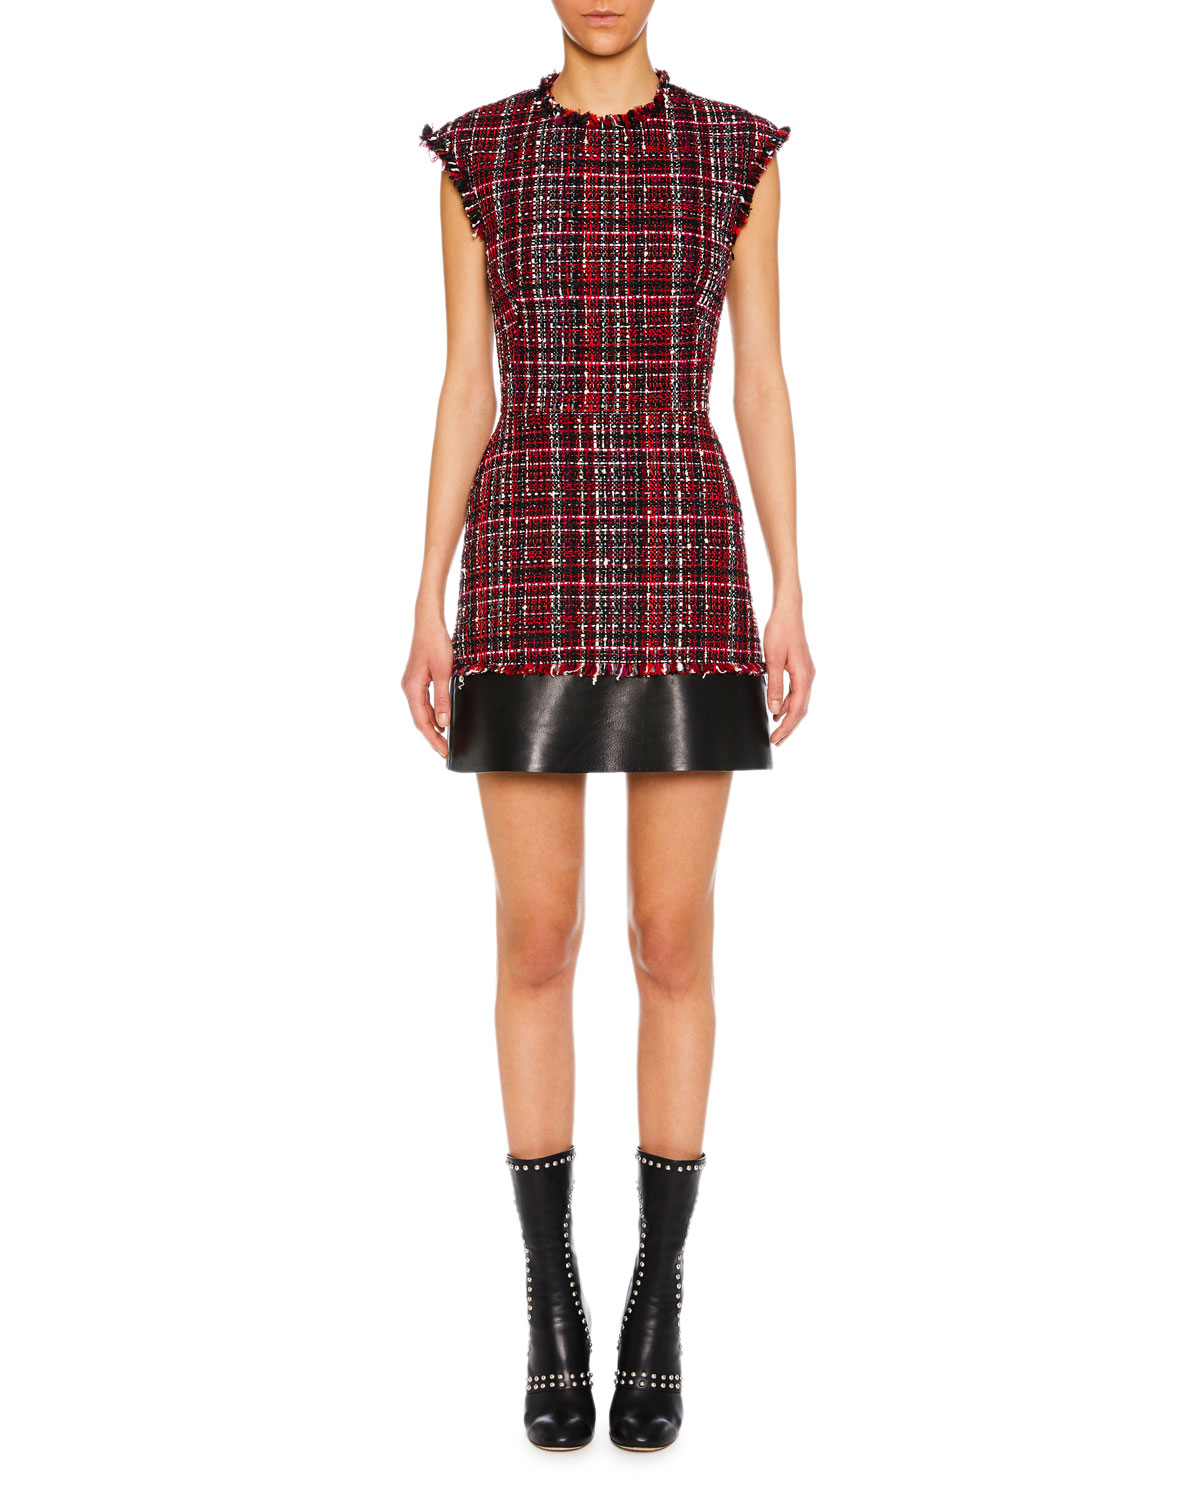 Cap-Sleeve Tweed Short Dress With Leather Trim in Black